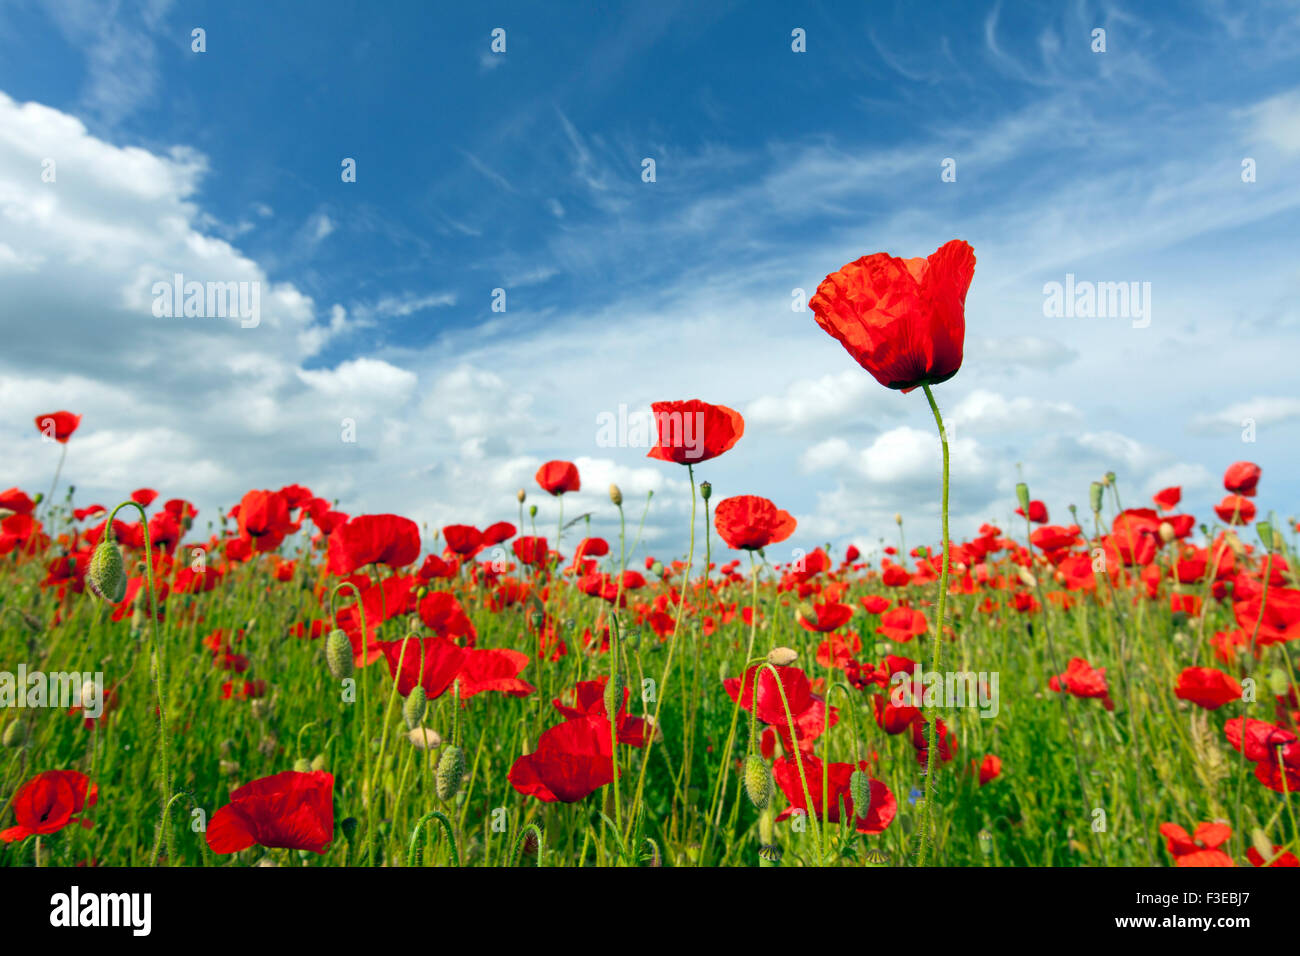 Common poppies / red poppy (Papaver rhoeas) flowering in field in summer - Stock Image